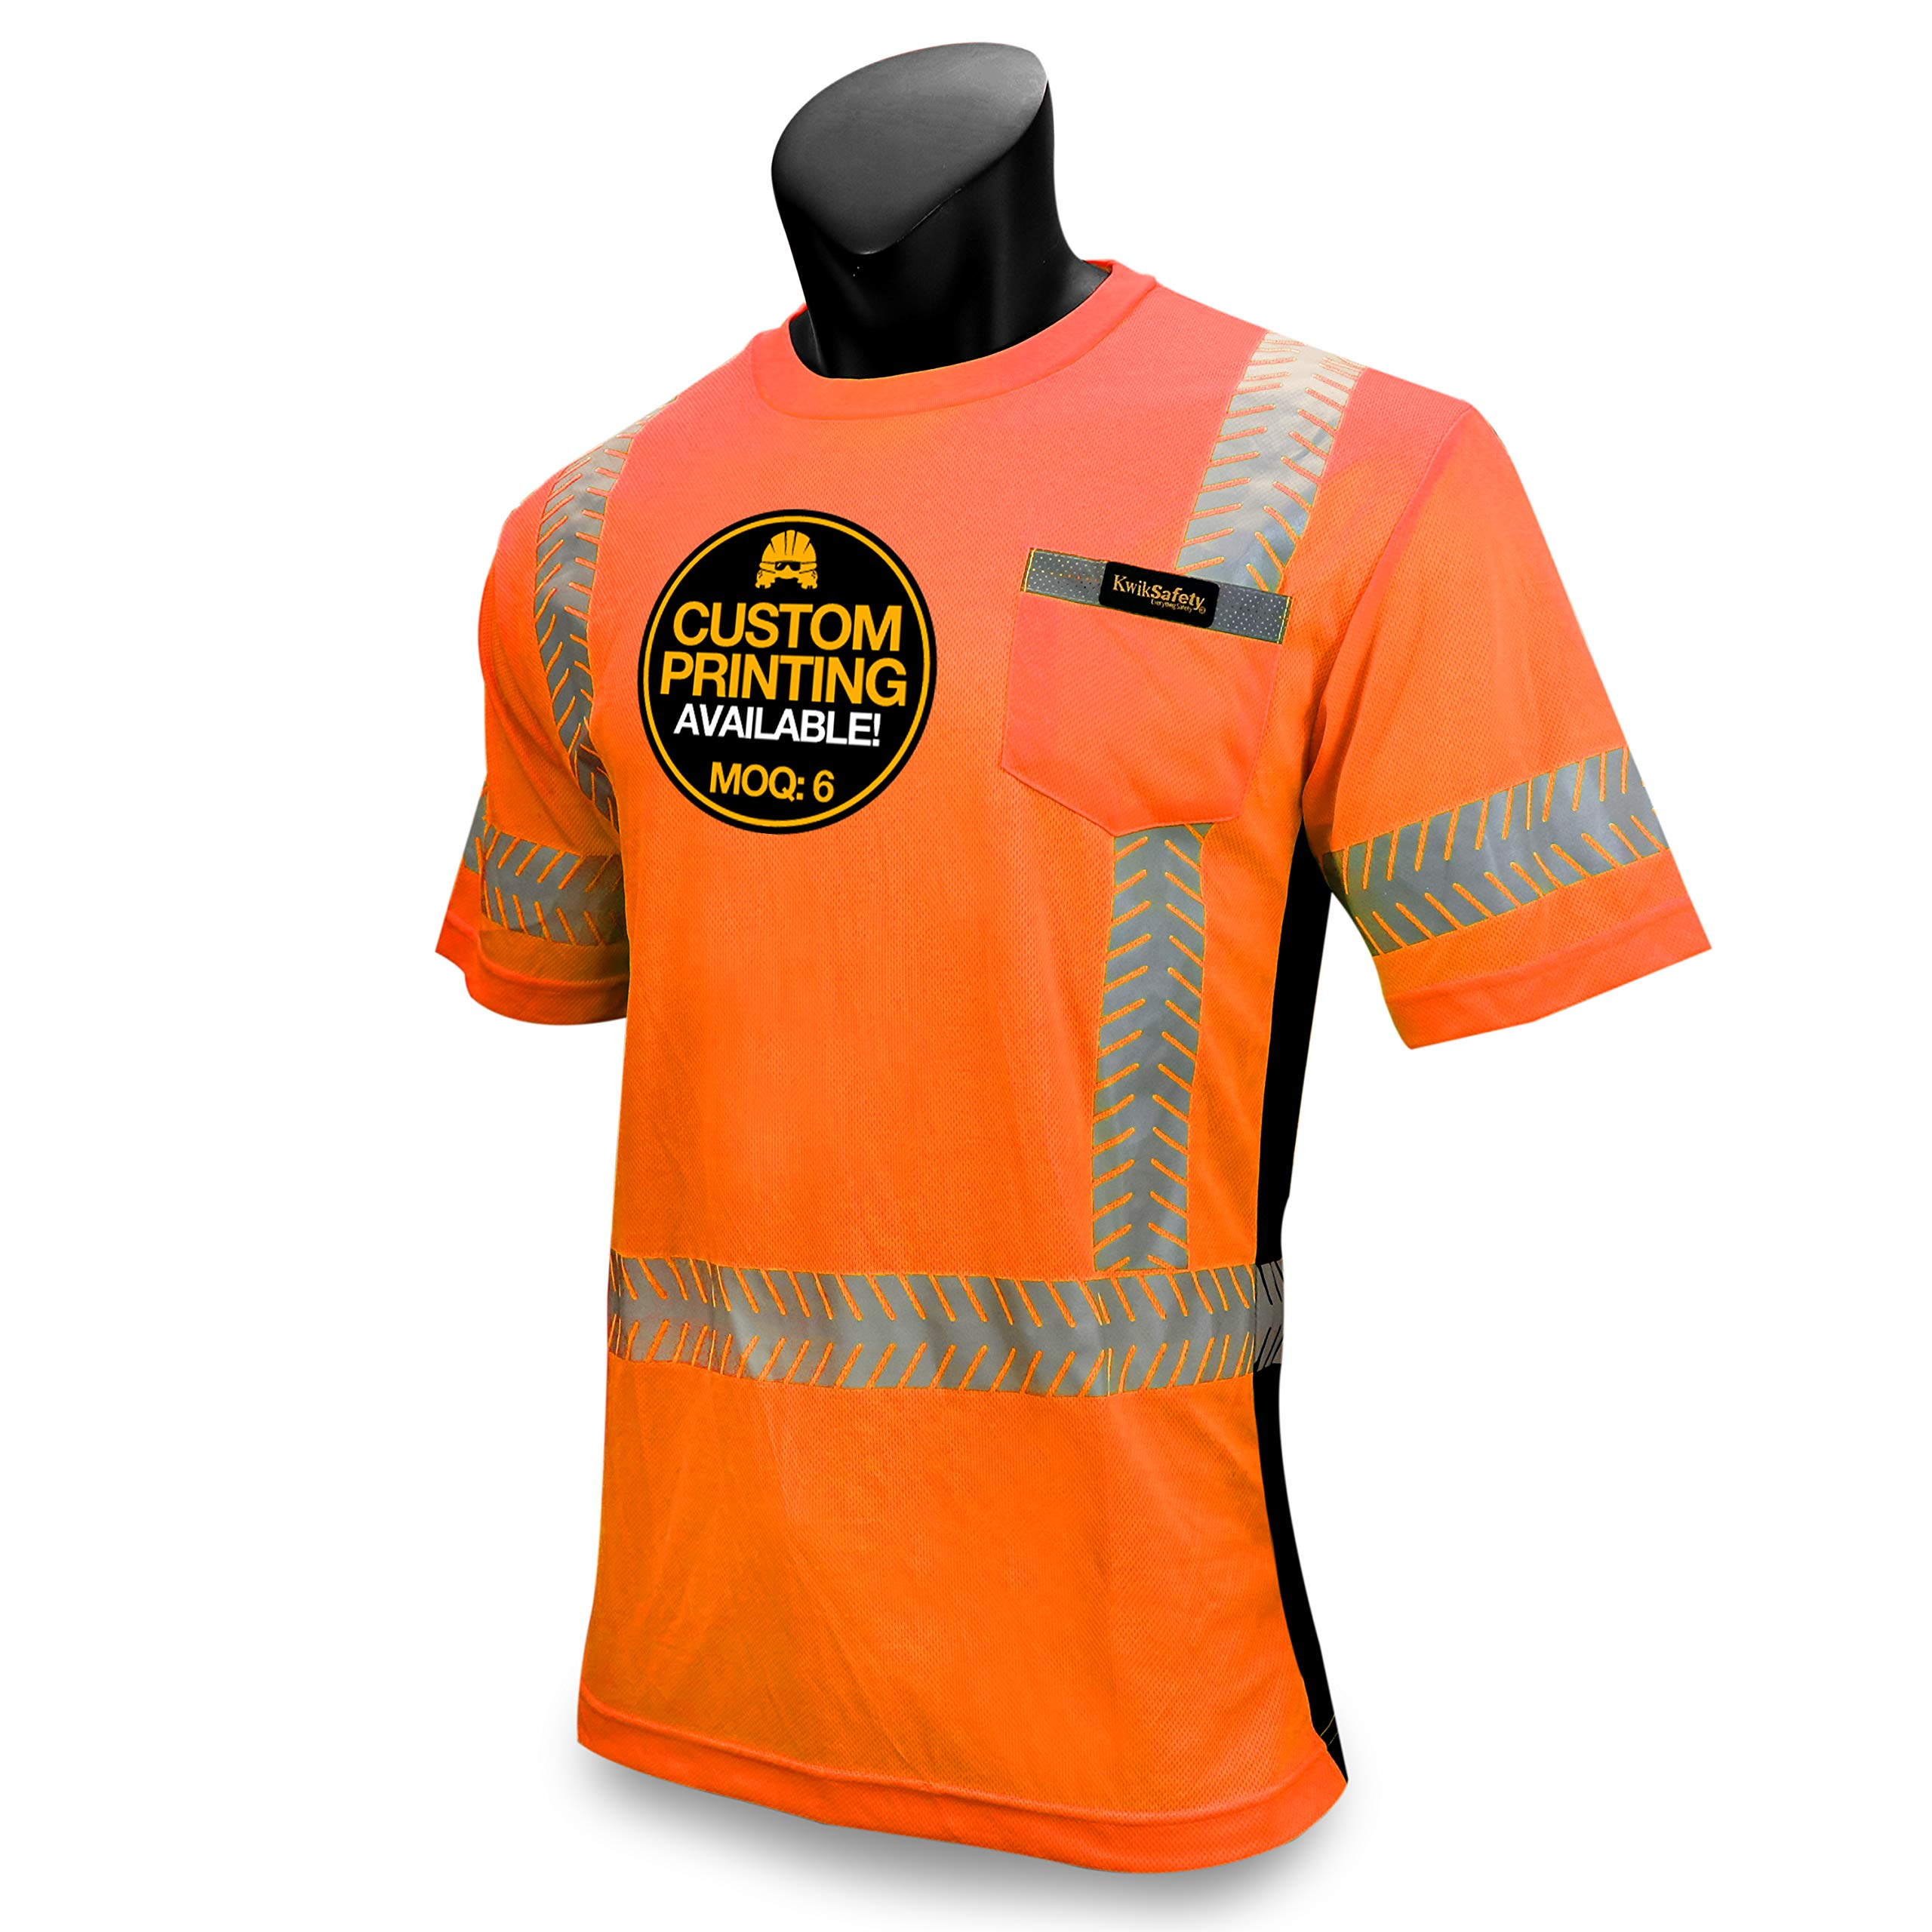 KwikSafety DISCOVERY | Class 2 Short Sleeve Safety Shirt | 360° ANSI Compliant Work Wear | Hi Vis Moisture Wicking Silver Fishbone | Men Women Construction Exercise Security | Orange Large